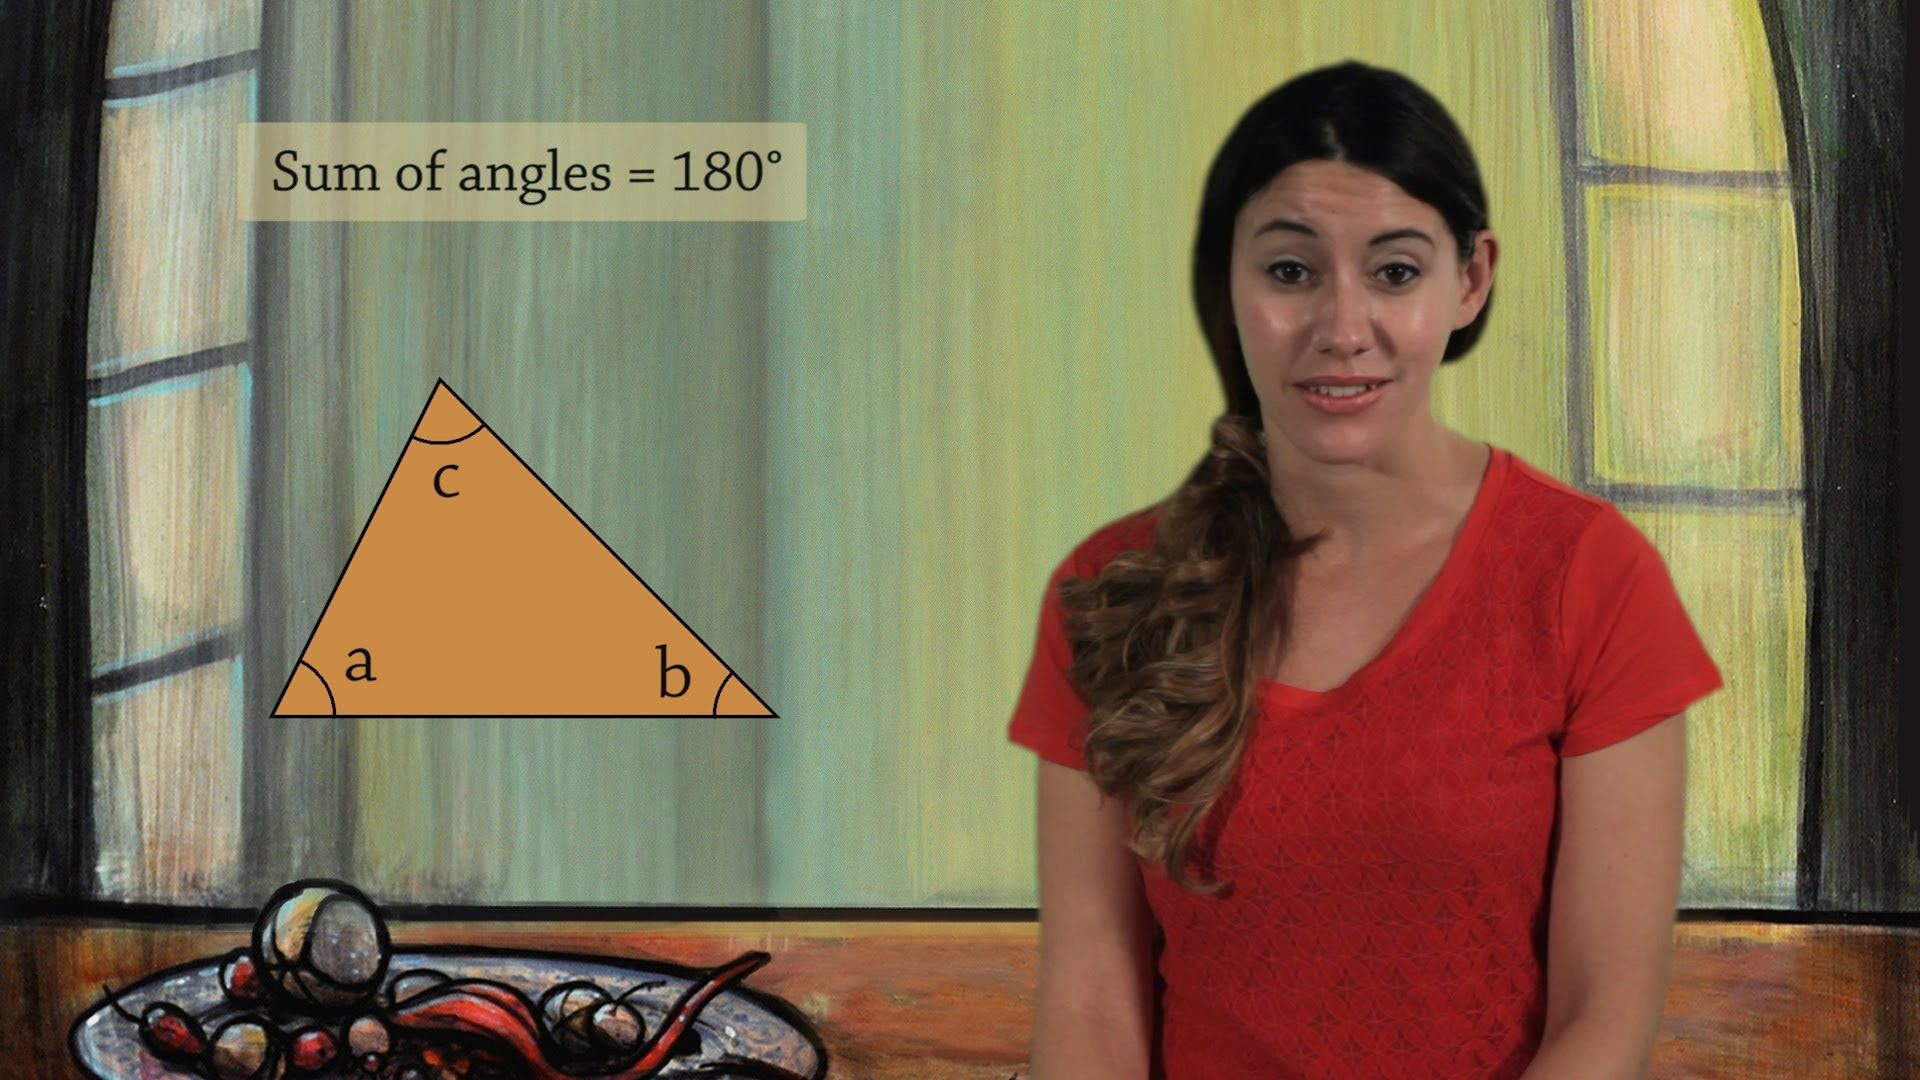 Sum Of The Angles In A Triangle